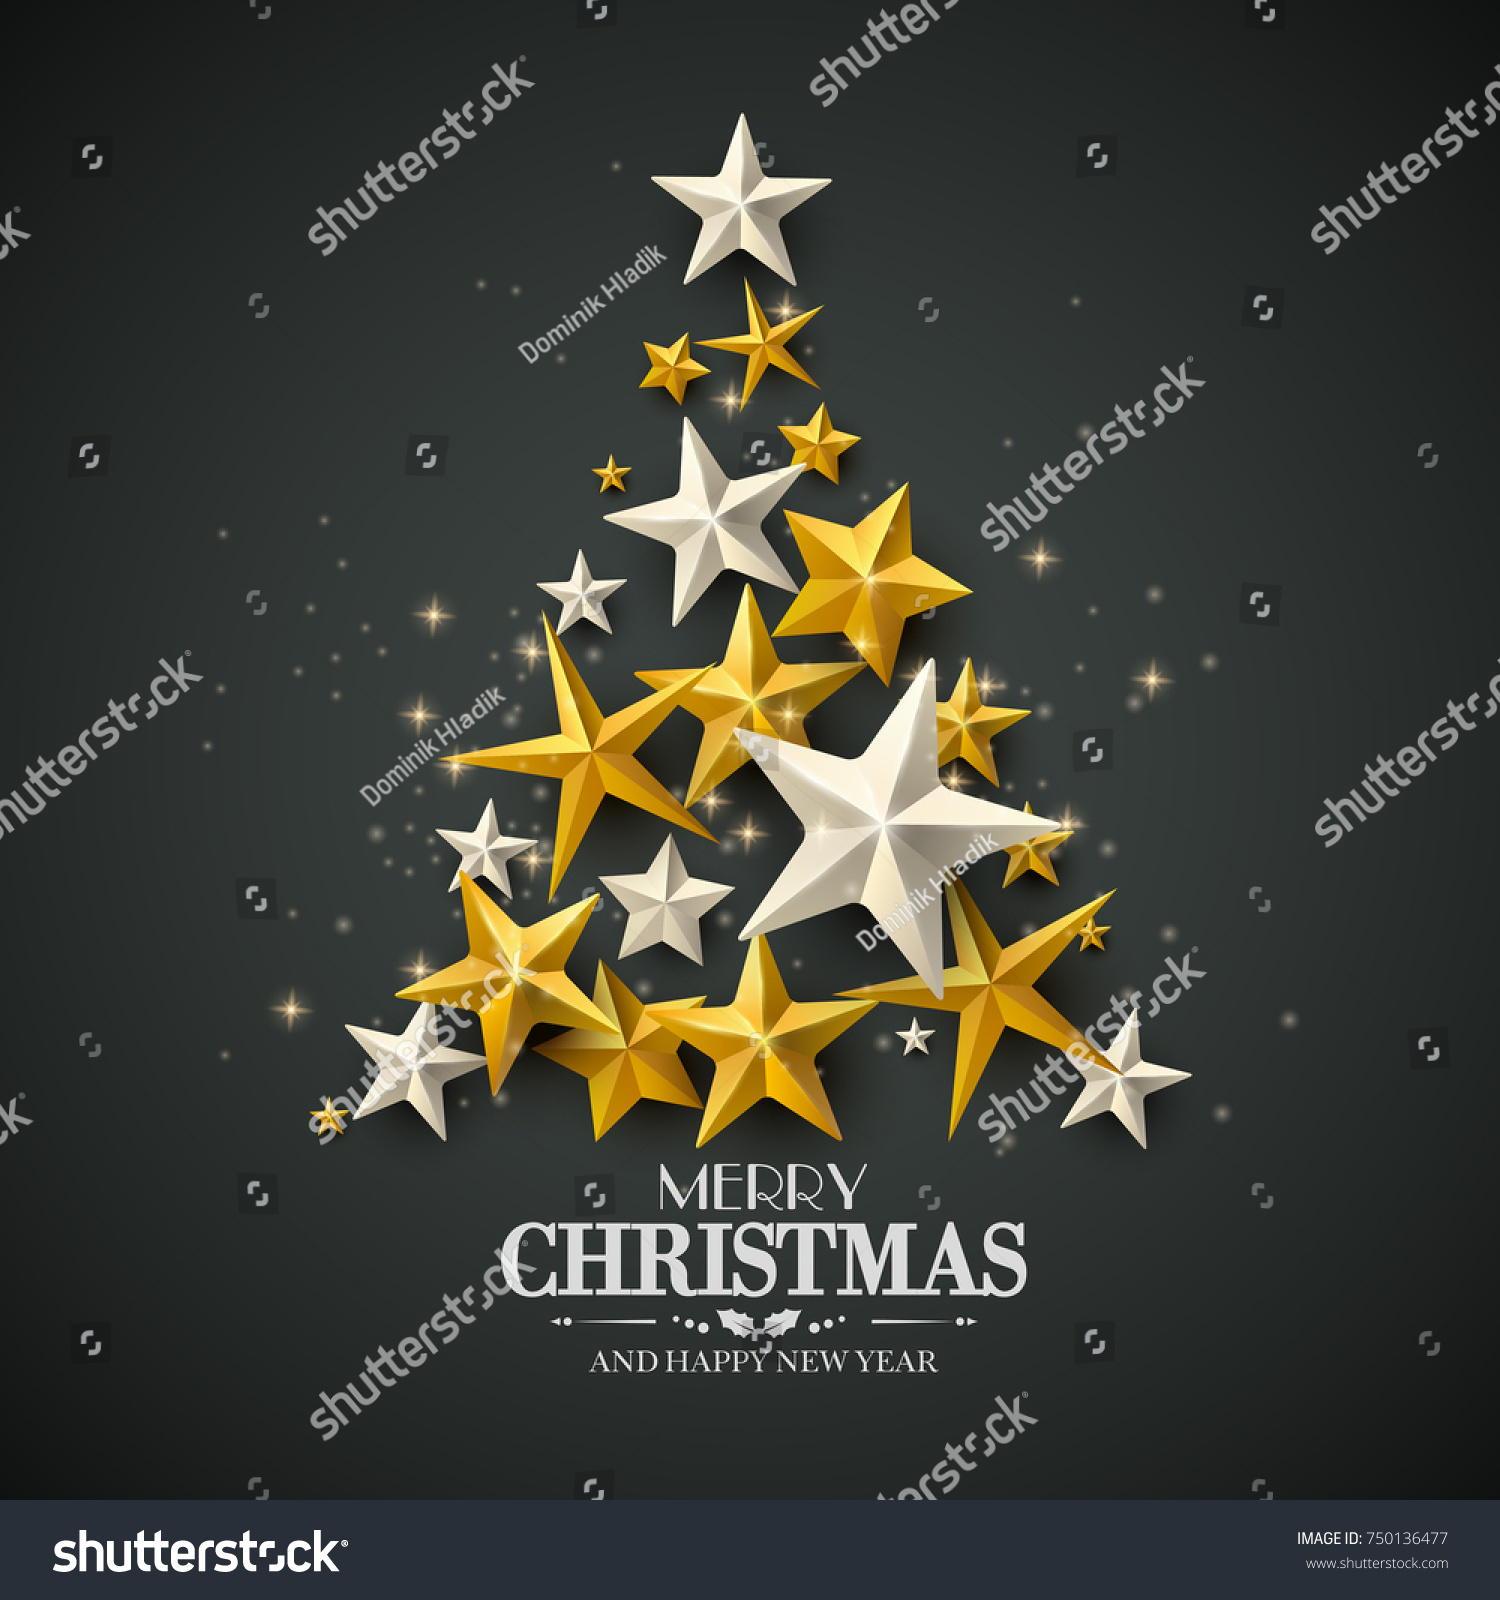 Modern christmas greeting card stars baubles stock vector modern christmas greeting card with stars and baubles in the shape of a tree kristyandbryce Images